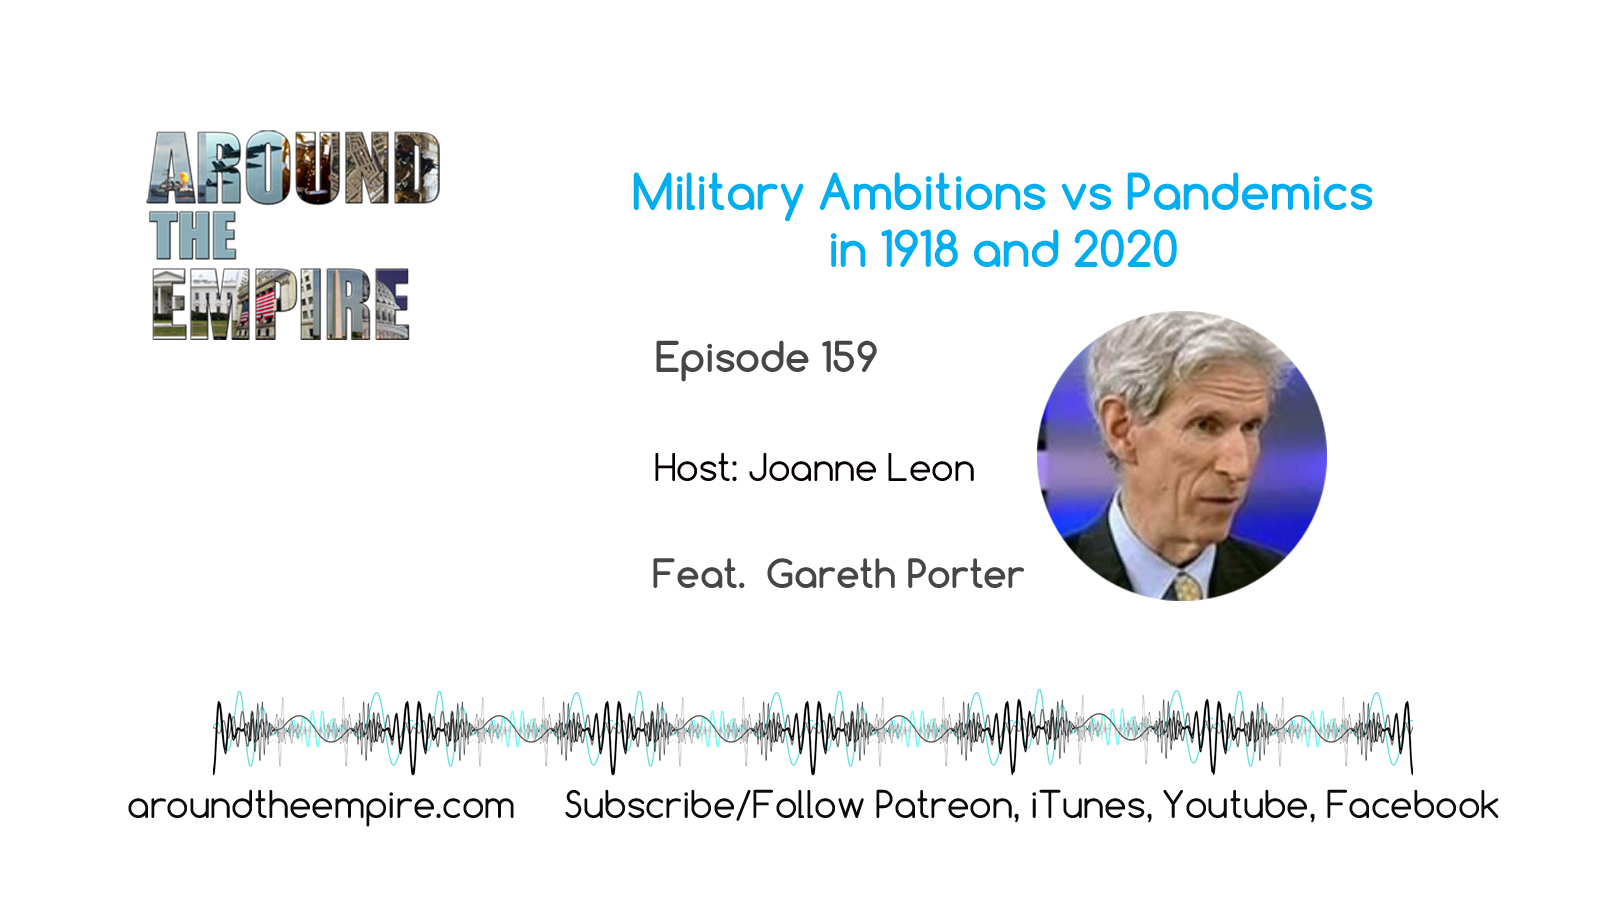 Ep 159 Military Ambitions vs Pandemics 1918 and 2020 feat Gareth Porter